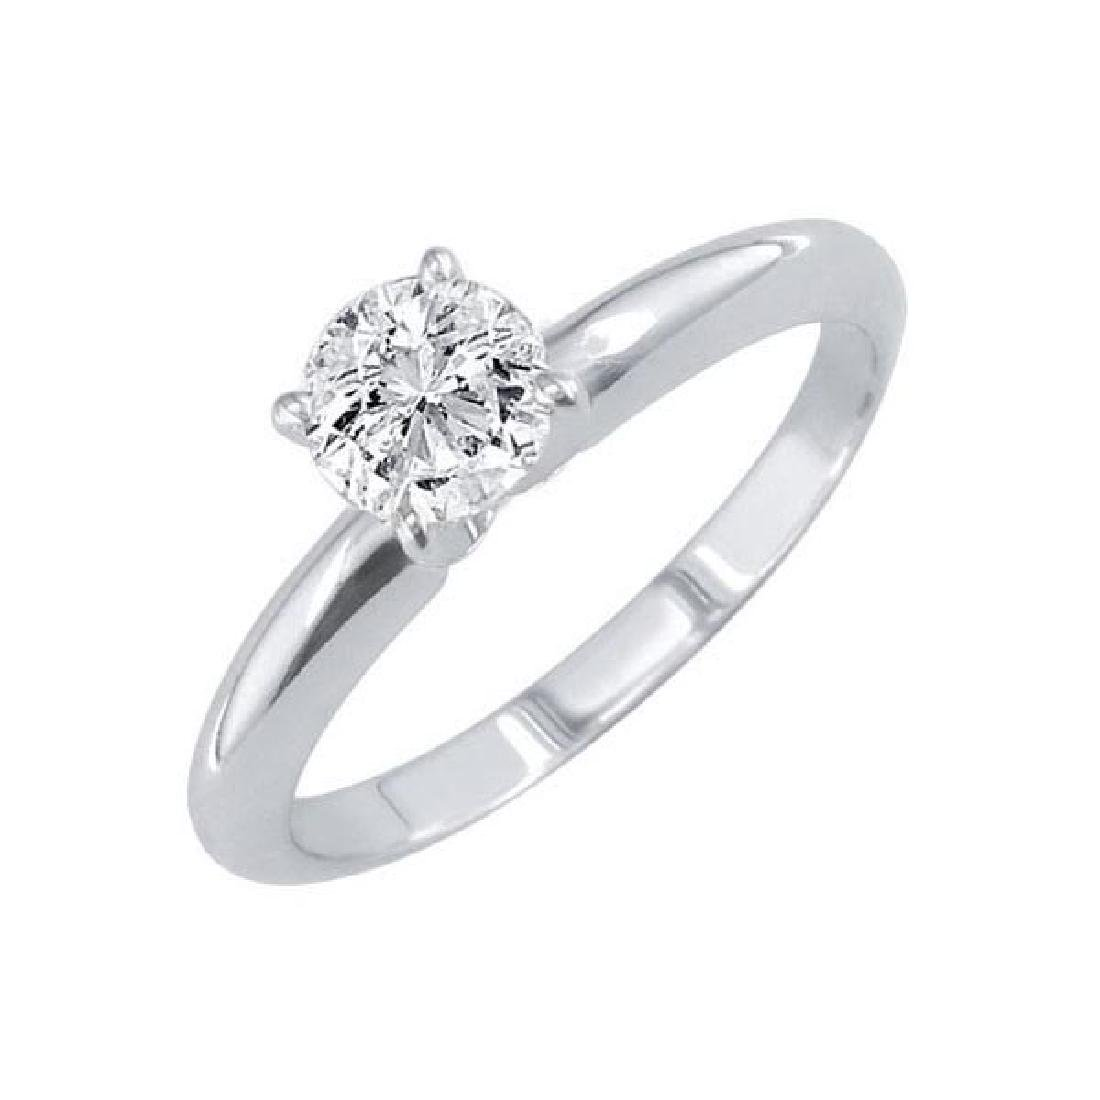 Certified 0.71 CTW Round Diamond Solitaire 14k Ring I/S